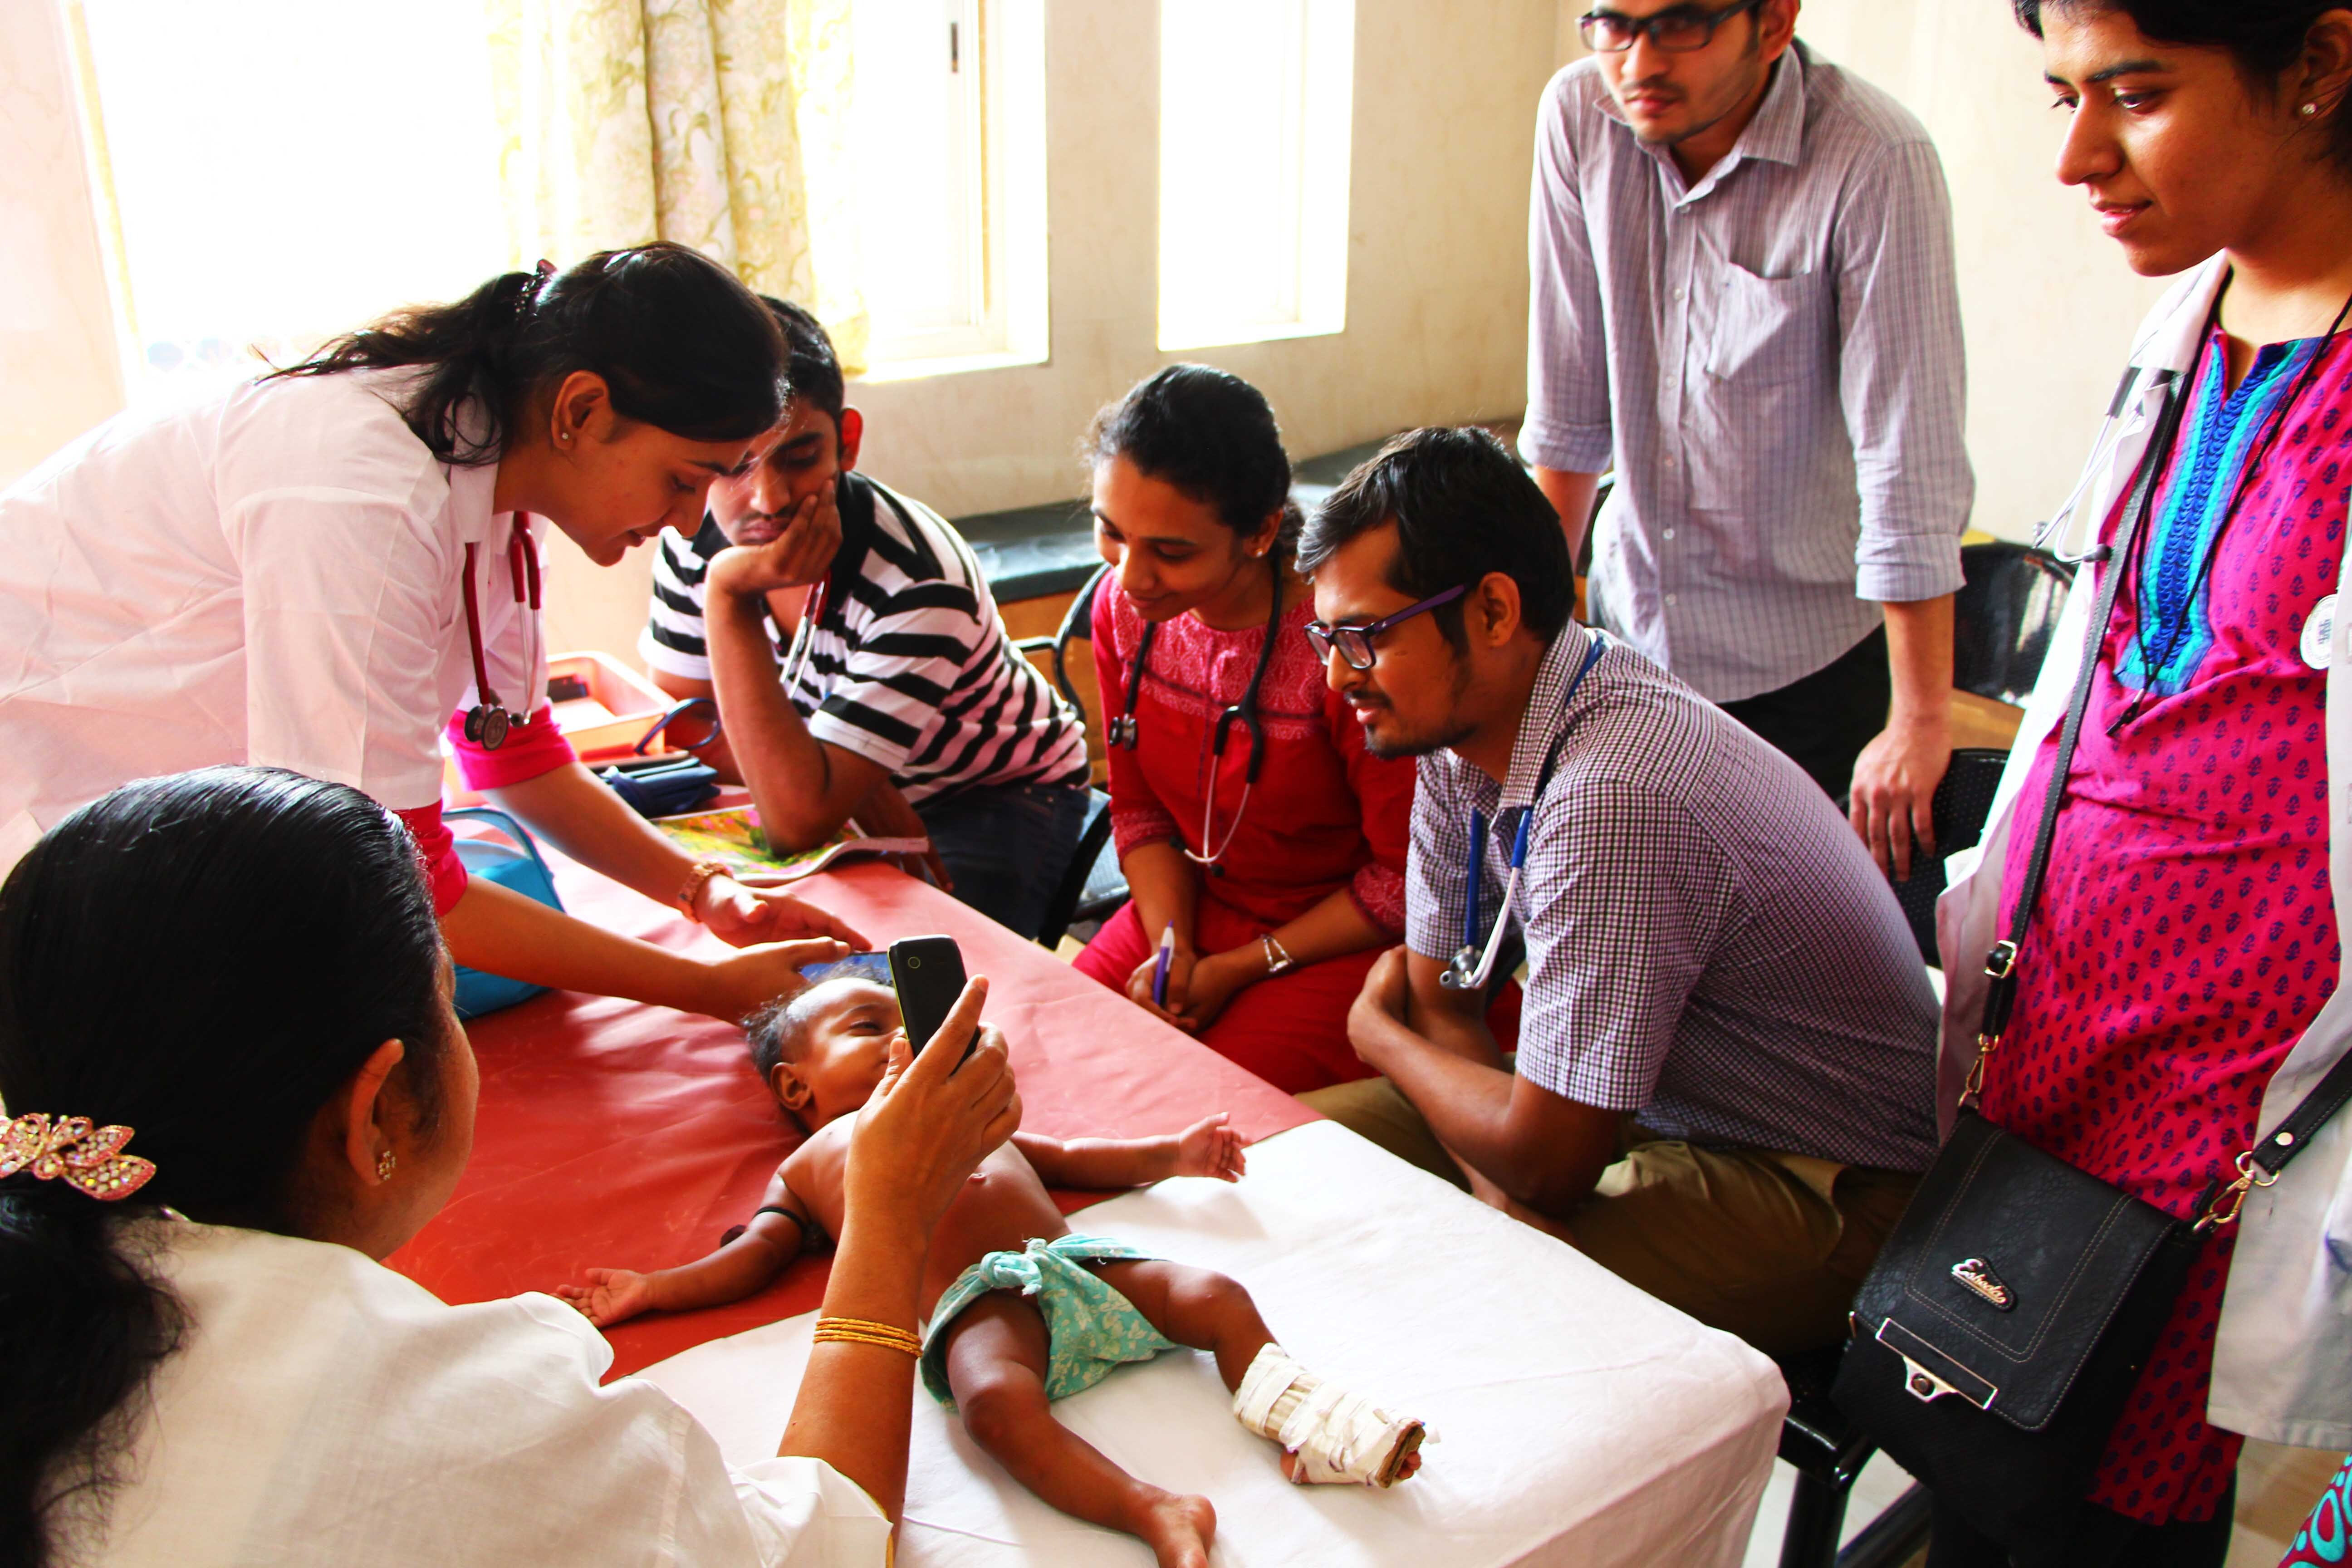 Feebris in use in India helping diagnose children